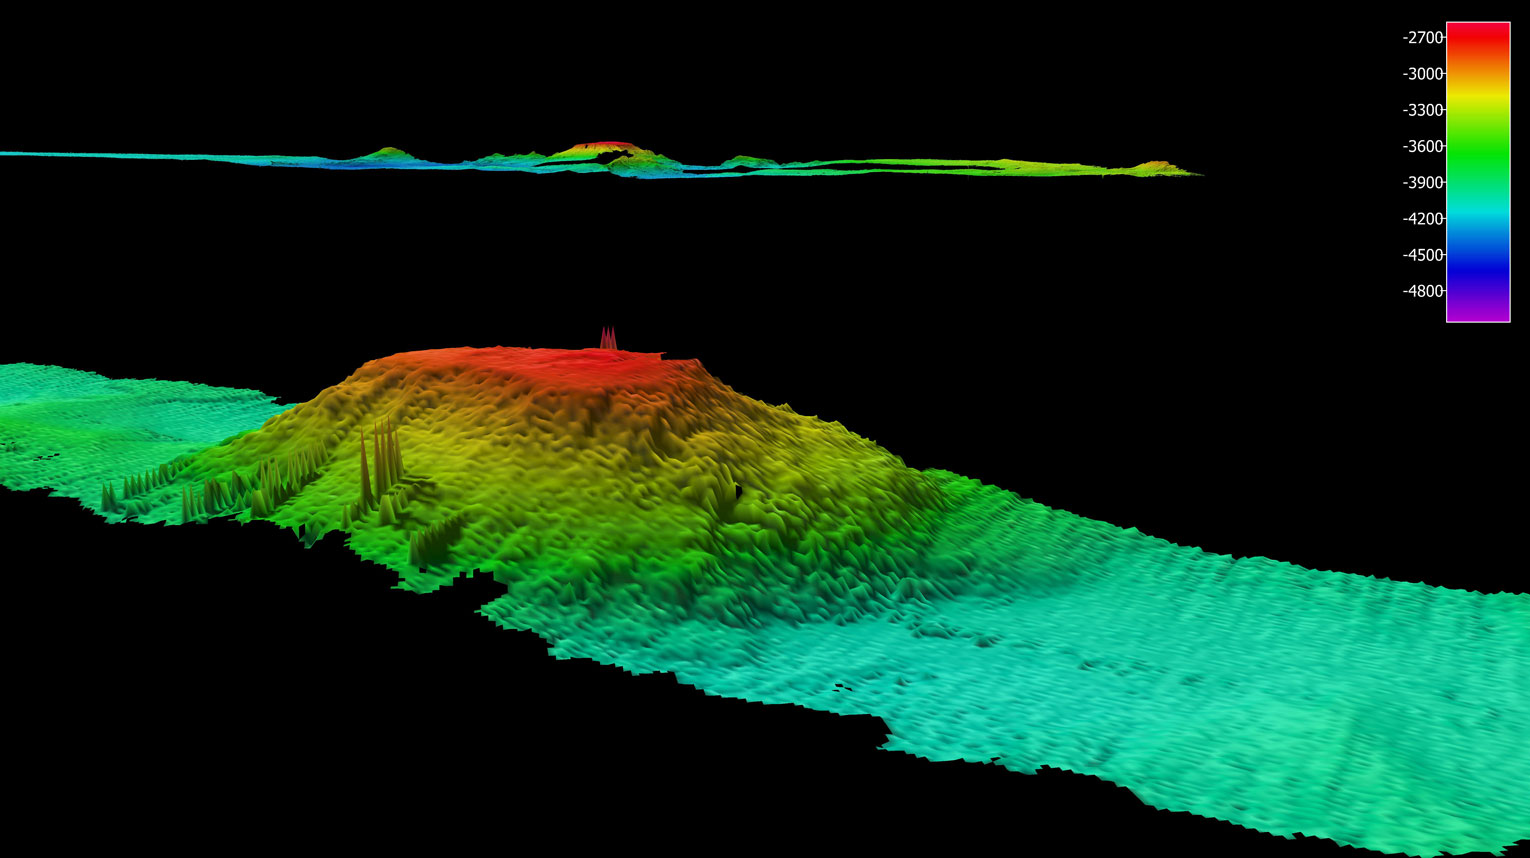 Another guyot. In the distance the guyot we traversed earlier this week, can be seen 140 km away from this one which we crossed yesterday, This one is about 16 km across and forms part of a NNE trending seamount chain visible in the satellite bathymetry.